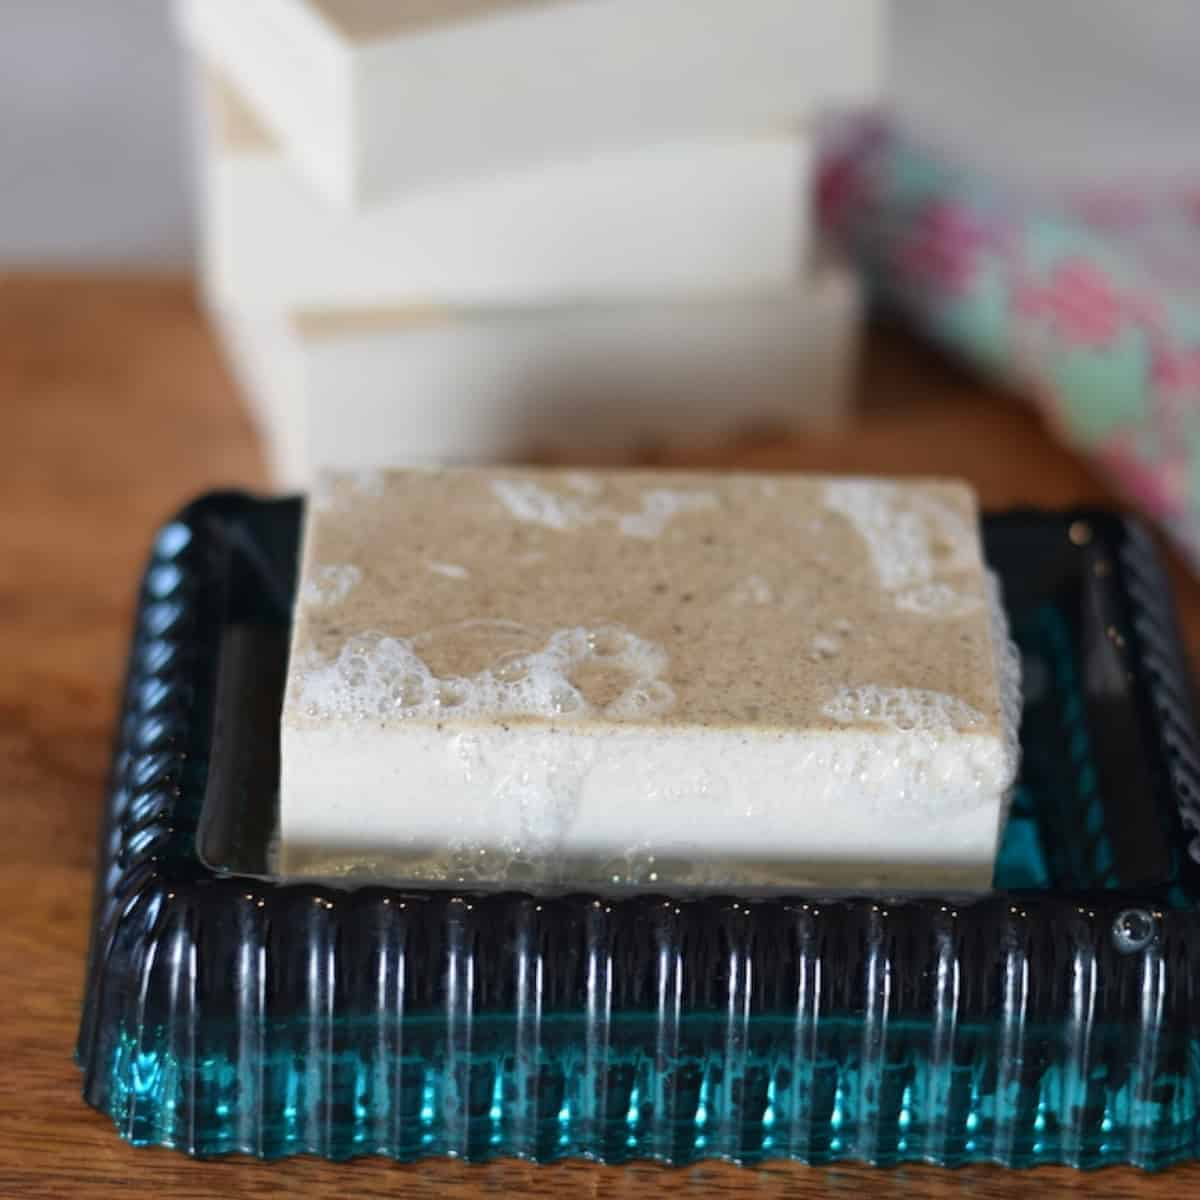 homemade bar of soap on a wood board and teal soap dish